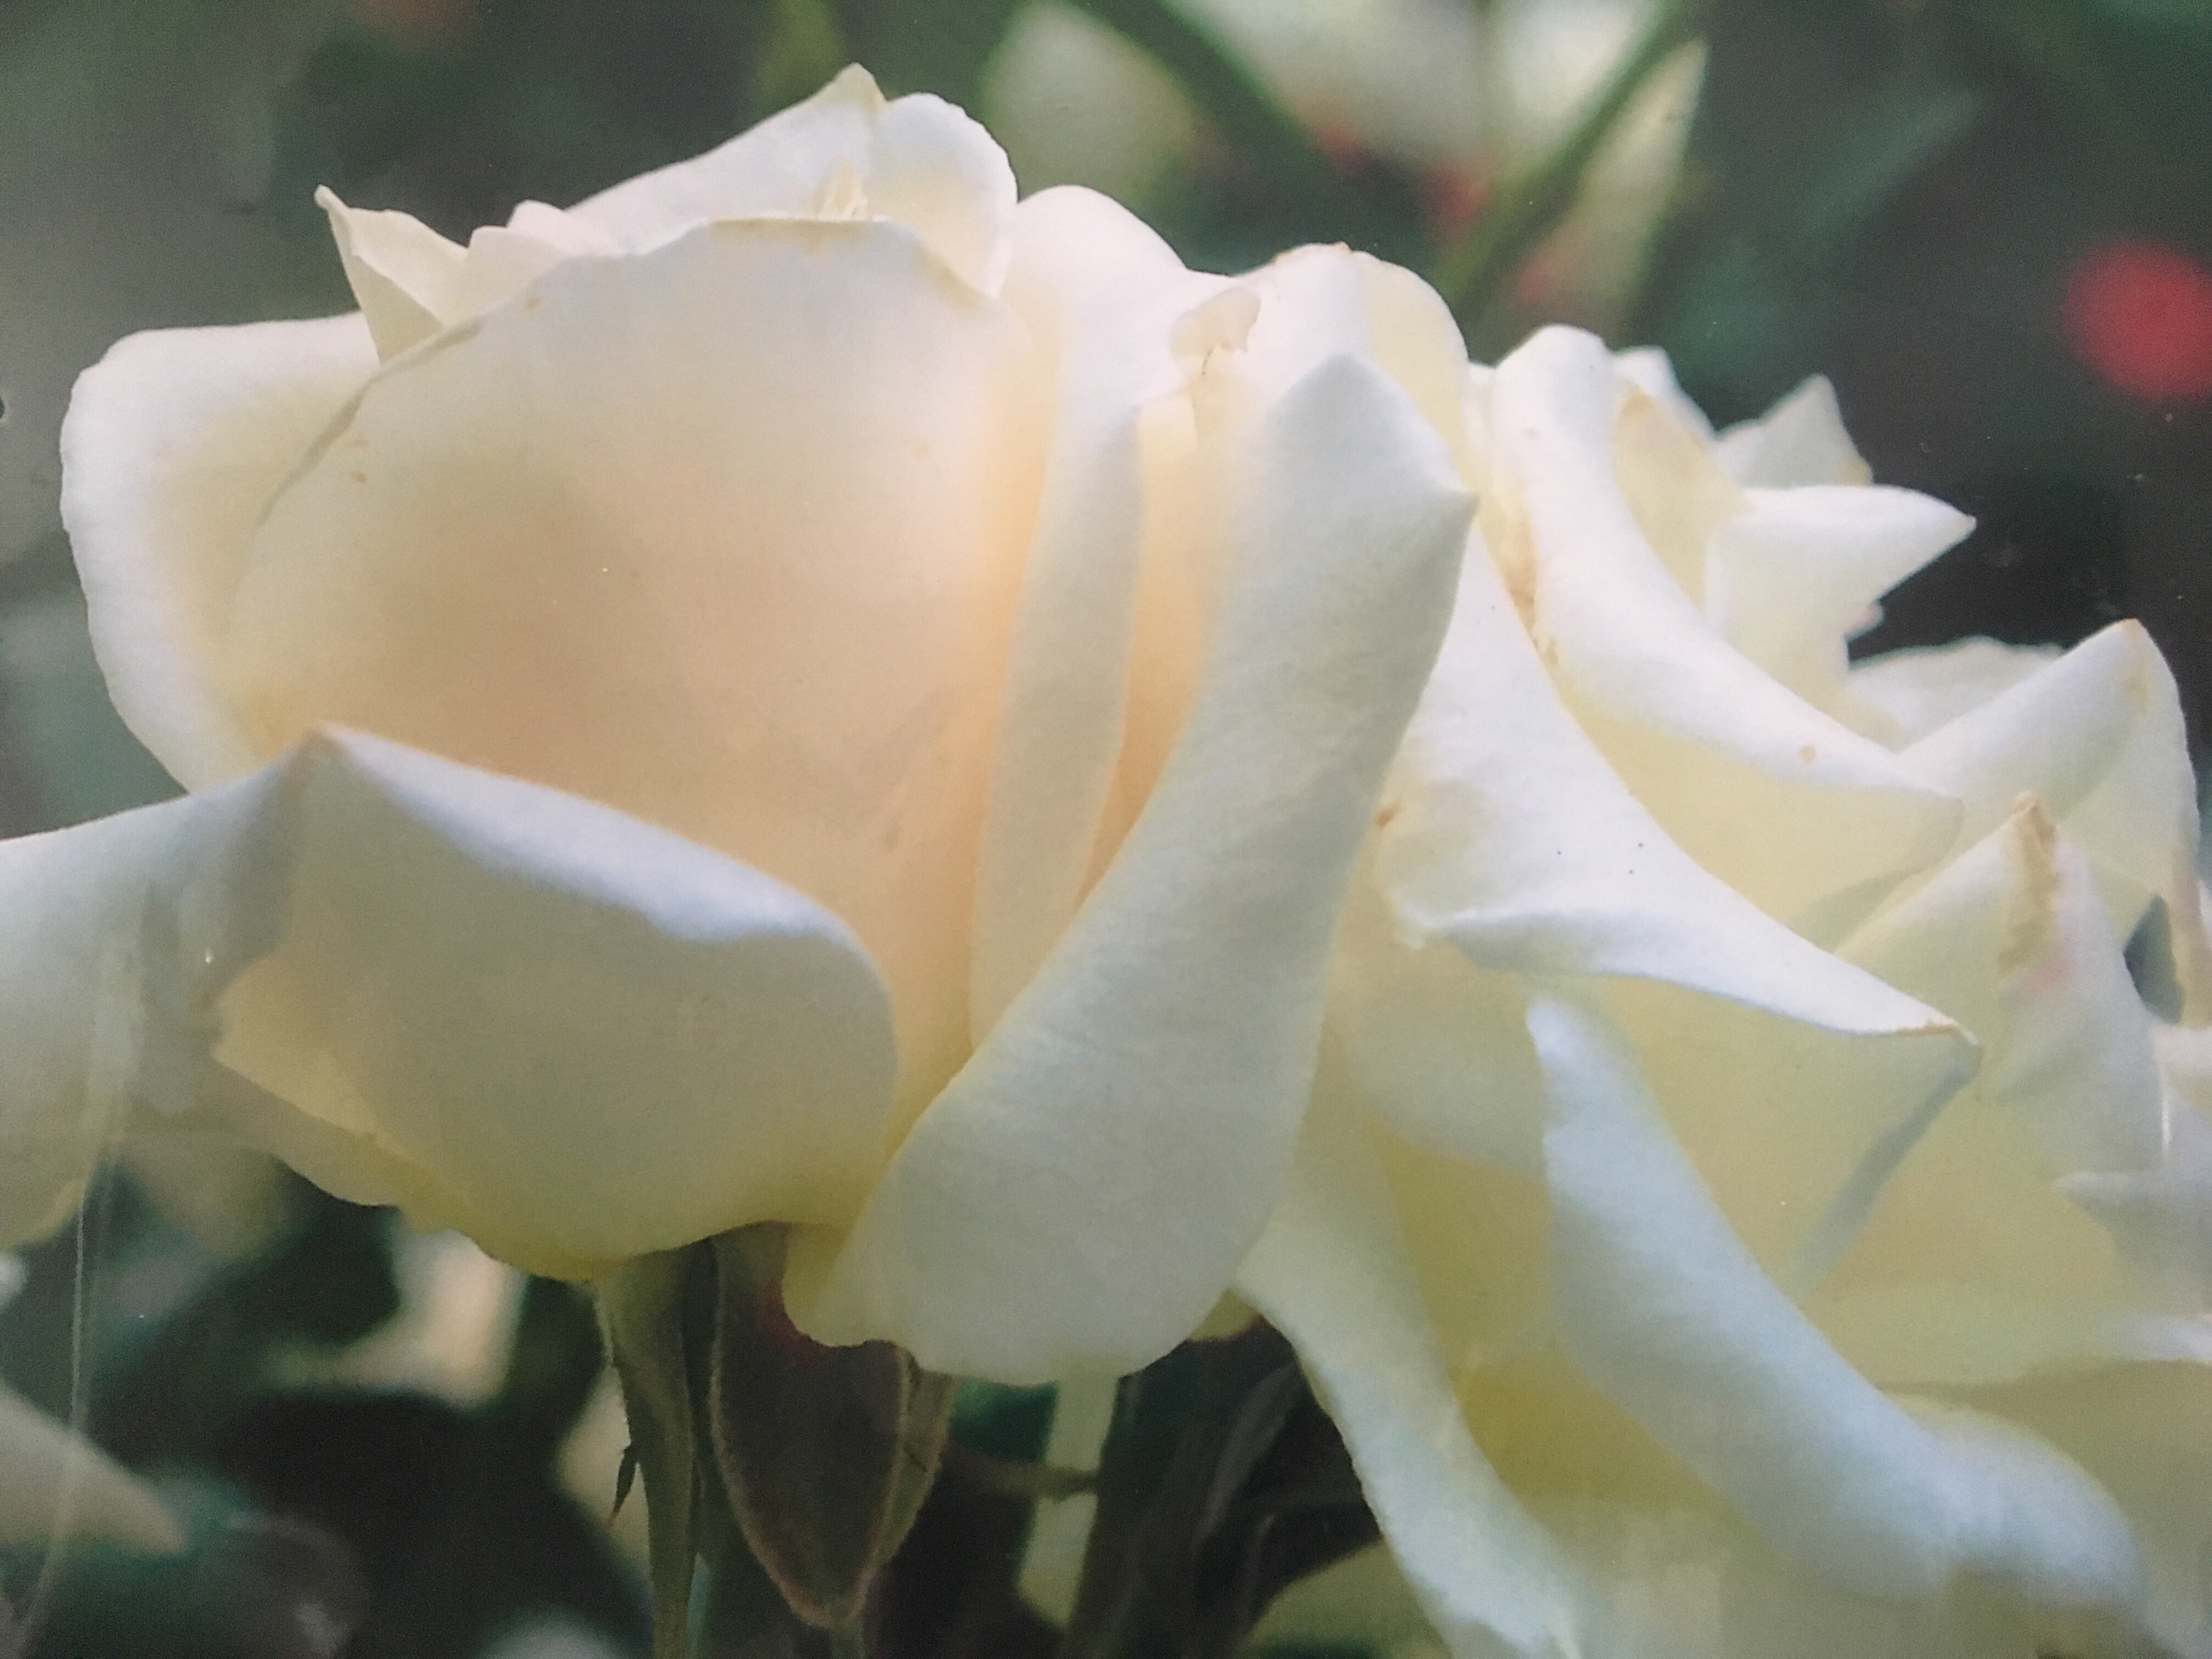 My mom's white rose